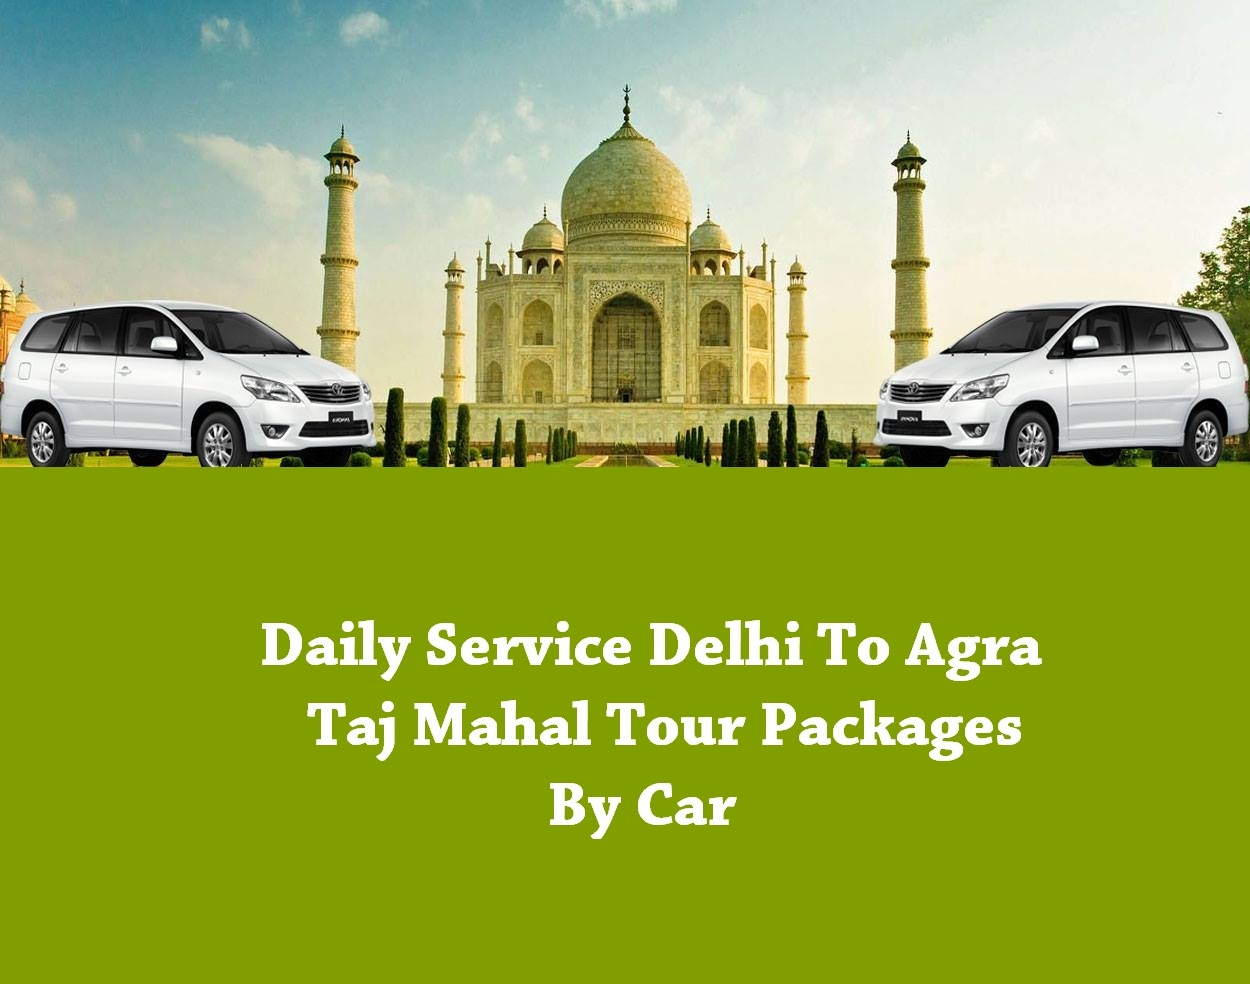 Delhi Car Hire Taxi Rental Service, Hire Car and Driver From in Delhi, Delhi Sightseeing Tour By Car, Delhi Same Day Tour By Car, Delhi Rajasthan Tour By Car, Delhi Tour And Travels Car Rental, Rajasthan Tour Packages By Car, Rajasthan Tour From Delhi, Rajasthan Tour Hire Car and Driver, Delhi Agra Same Day Tour Car Hire, Car Taxi Rental Delhi, Delhi Car Taxi Hire, India Tour Package By Car, India Tour Package From Delhi, Rajasthan Tour Package From Delhi, Taj Mahal Tour From Delhi, Delhi Tour